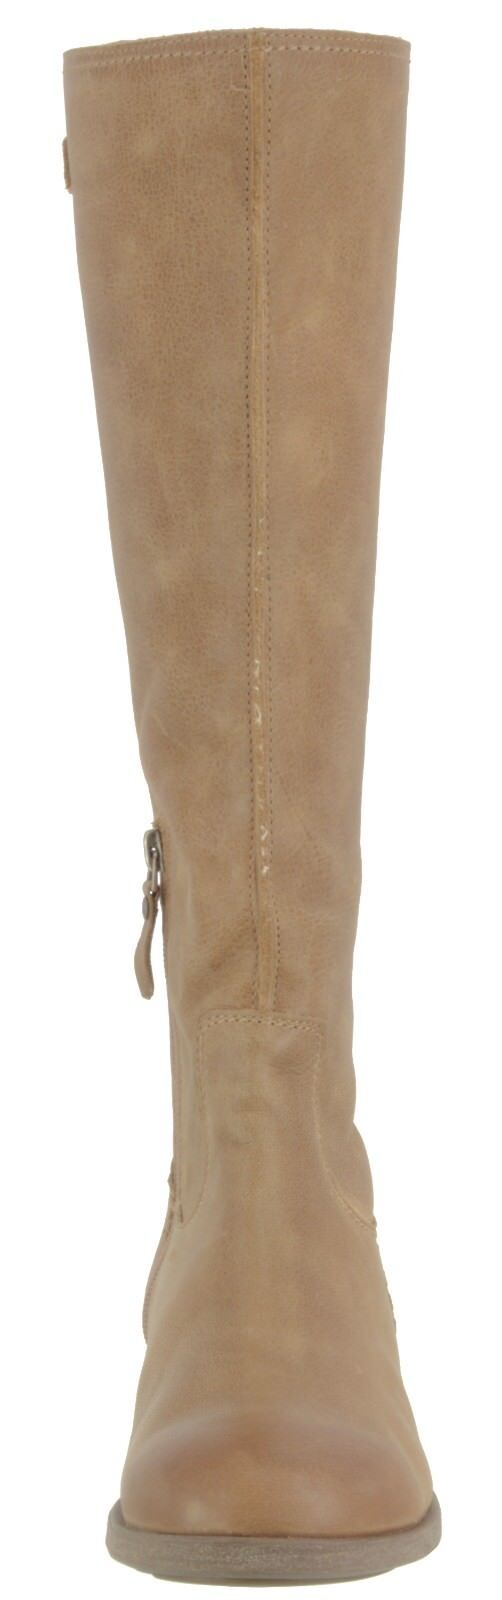 OLUKAI SAMPLE WOMENS KAILA SUEDE LEATHER KNEE HIGH LACE UP BOOTS  US 7 EUR 37